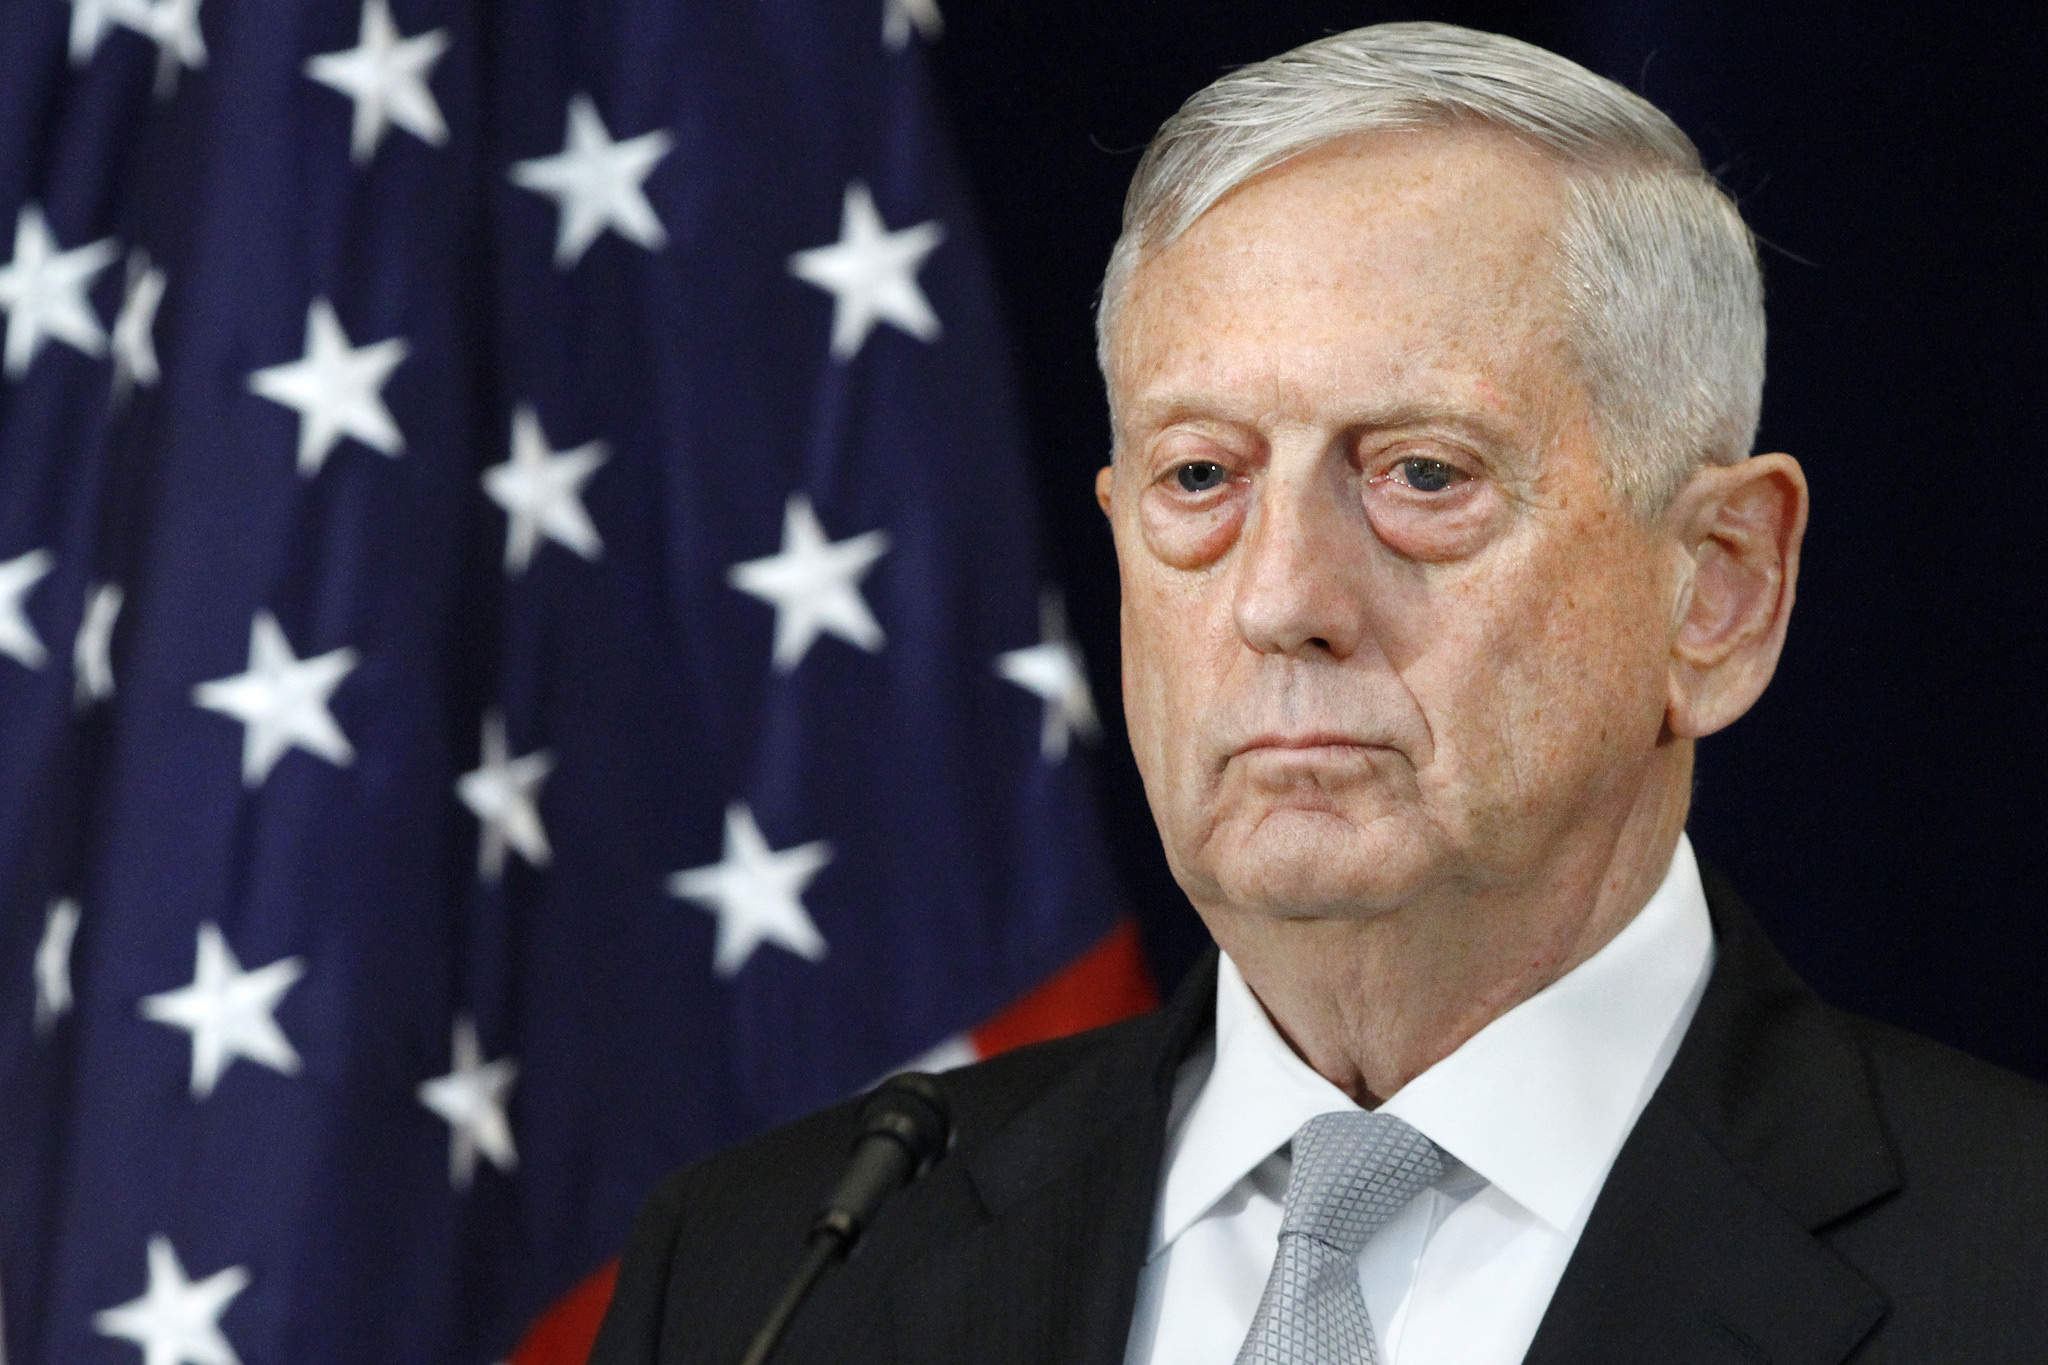 Defense Secretary James Mattis attends a news conference, Thursday, Aug. 17, 2017, at the State Department in Washington. (Jacquelyn Martin/AP)